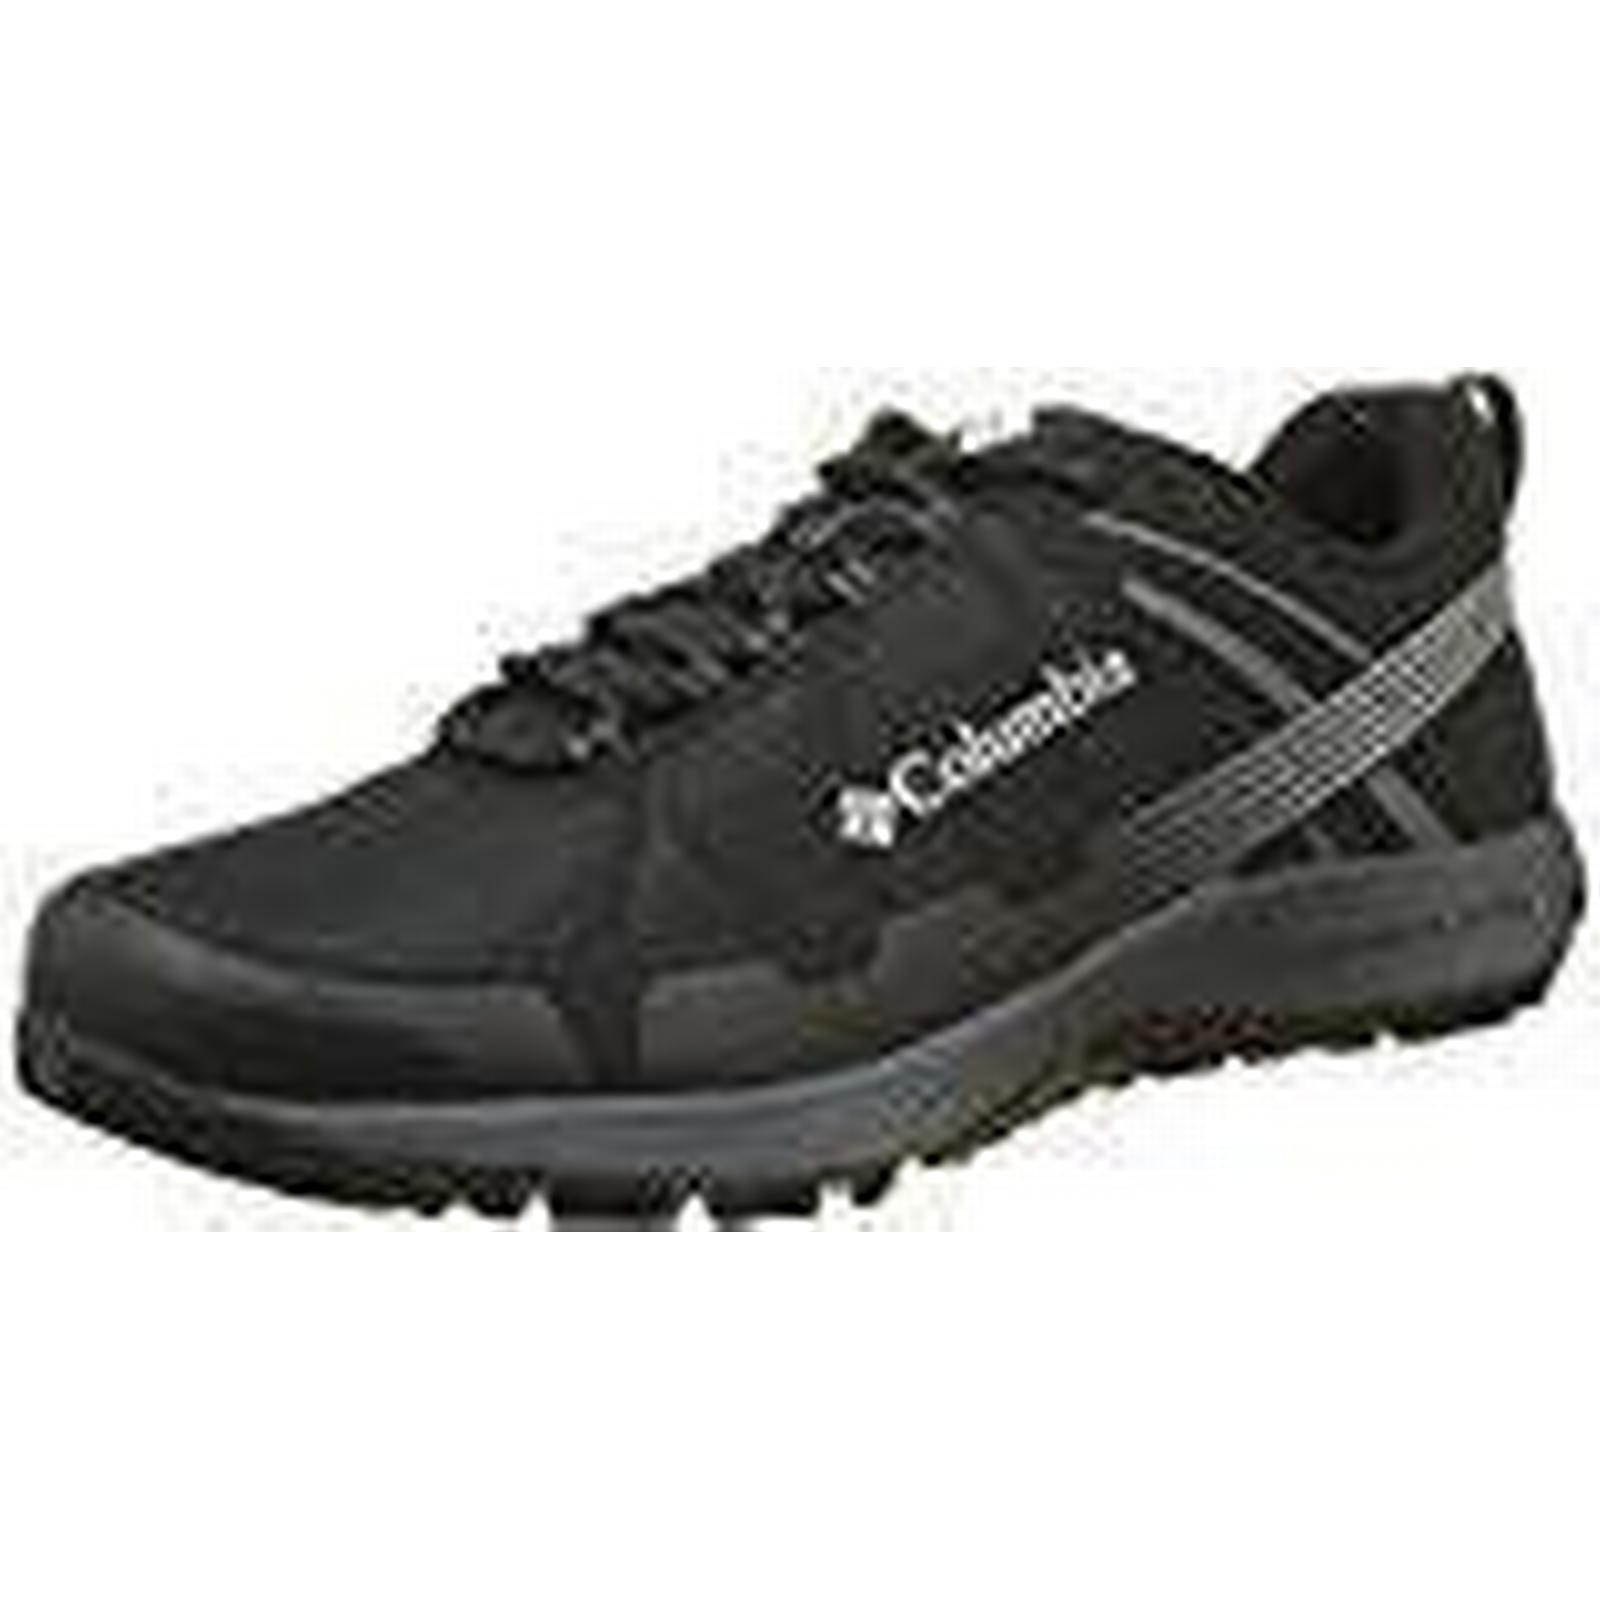 Columbia Men's Multisport Shoes, CONSPIRACY Size: V, Black (Black/ White), Size: CONSPIRACY 9 8ab4a0